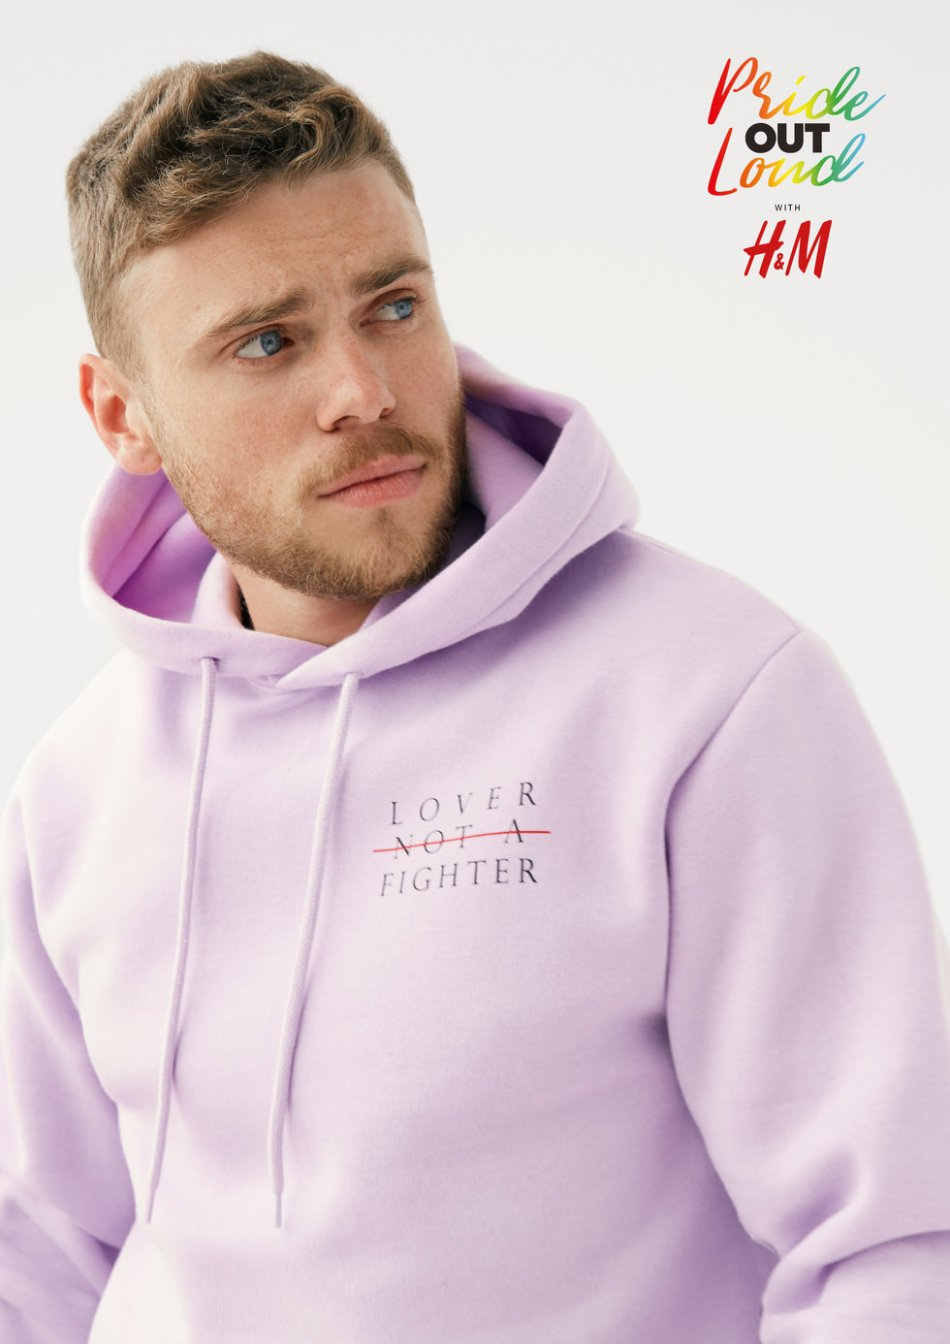 H&M Launches First Pride Collection Featuring Kim Petras, Shaun Ross and Aja